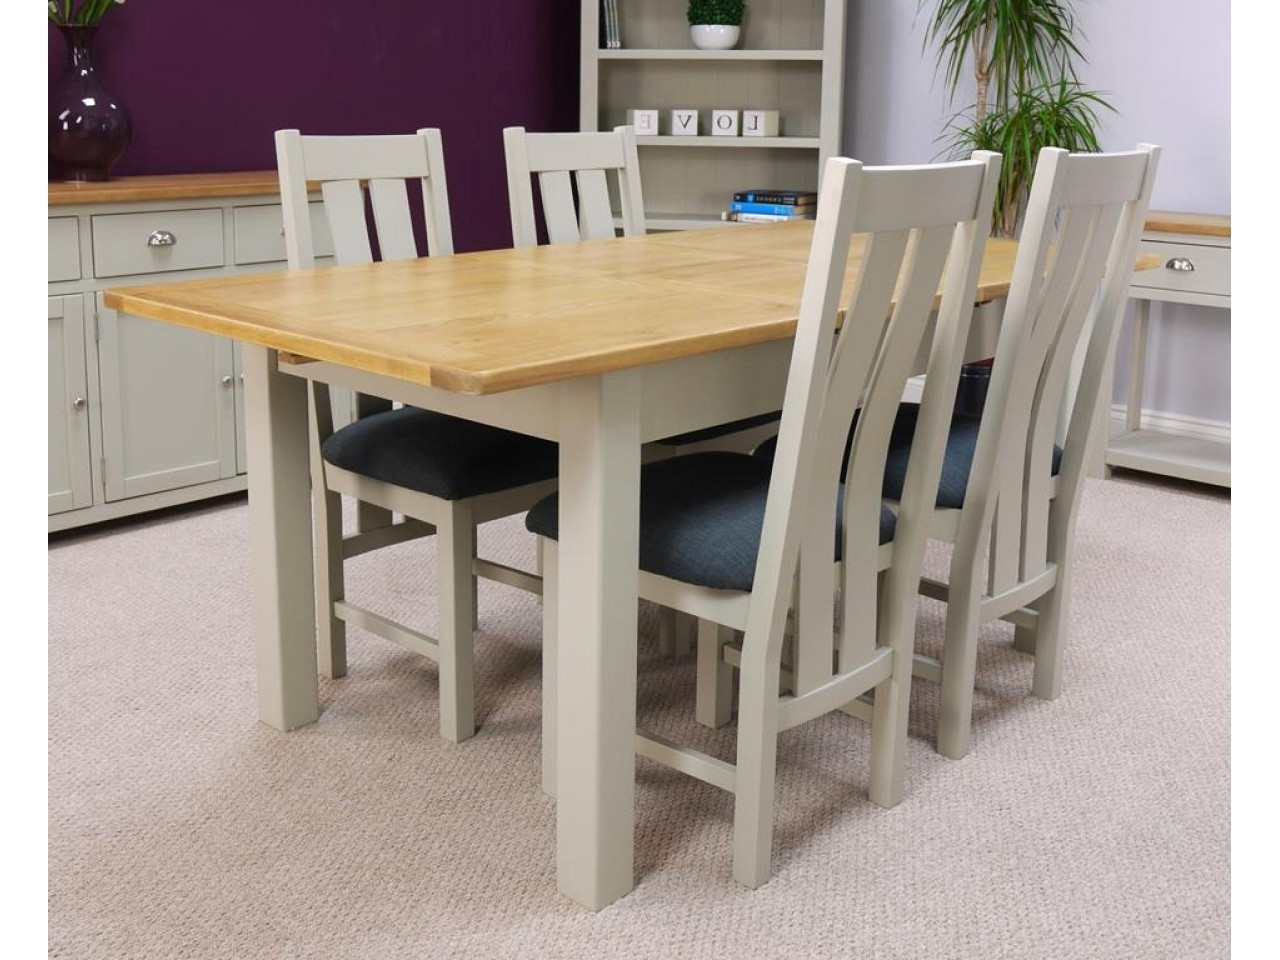 Extendable Oak Dining Tables And Chairs Throughout 2017 Oak Living Room Furniture Uk With Two Tone Grey Painted Extending (Gallery 20 of 25)